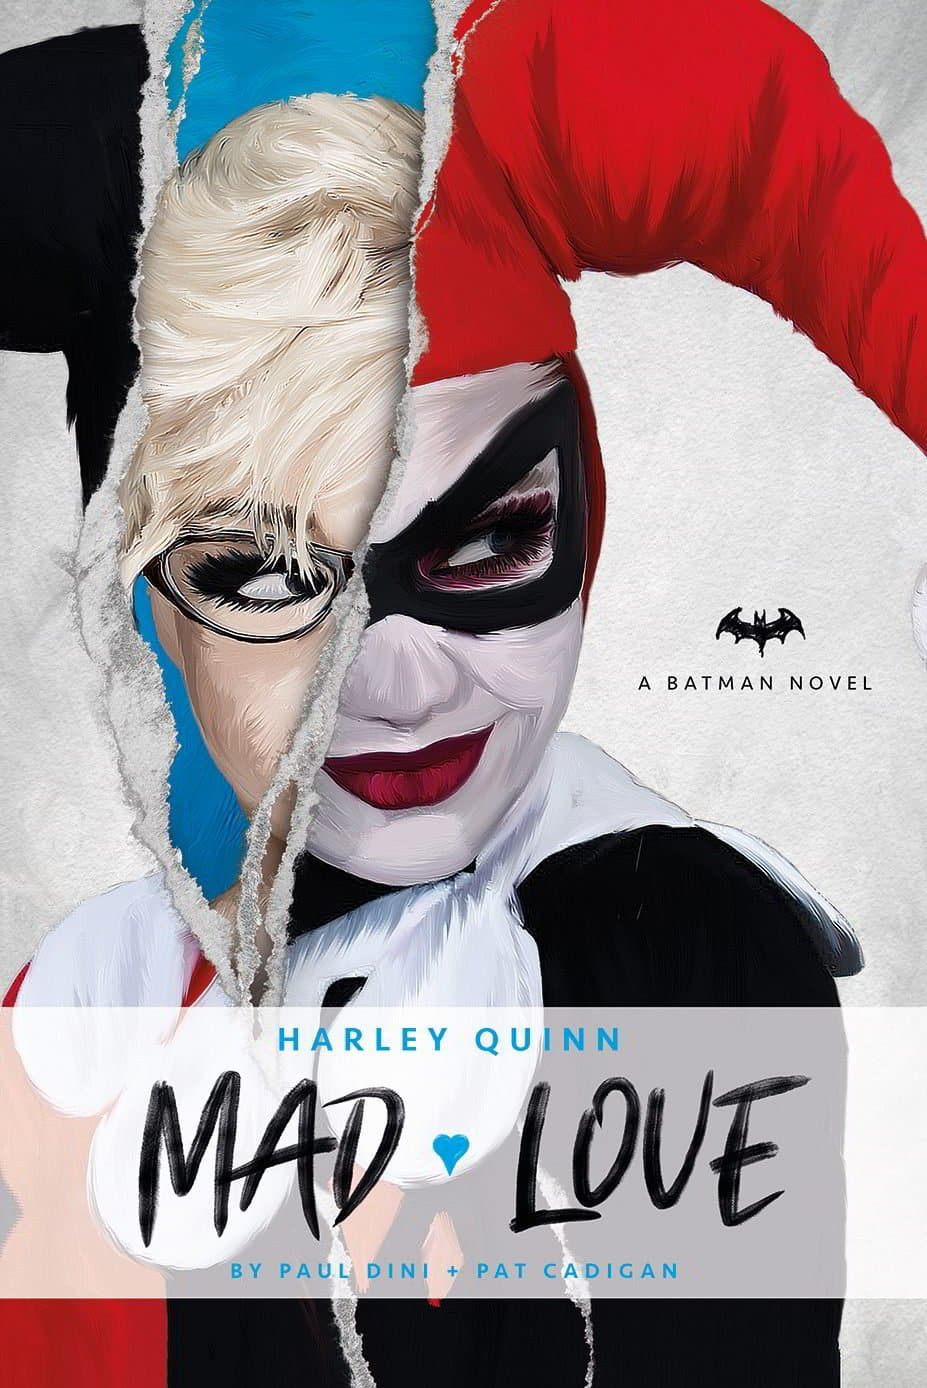 Harley Quinn: Mad Love Review - A Solid Novel Adaptation